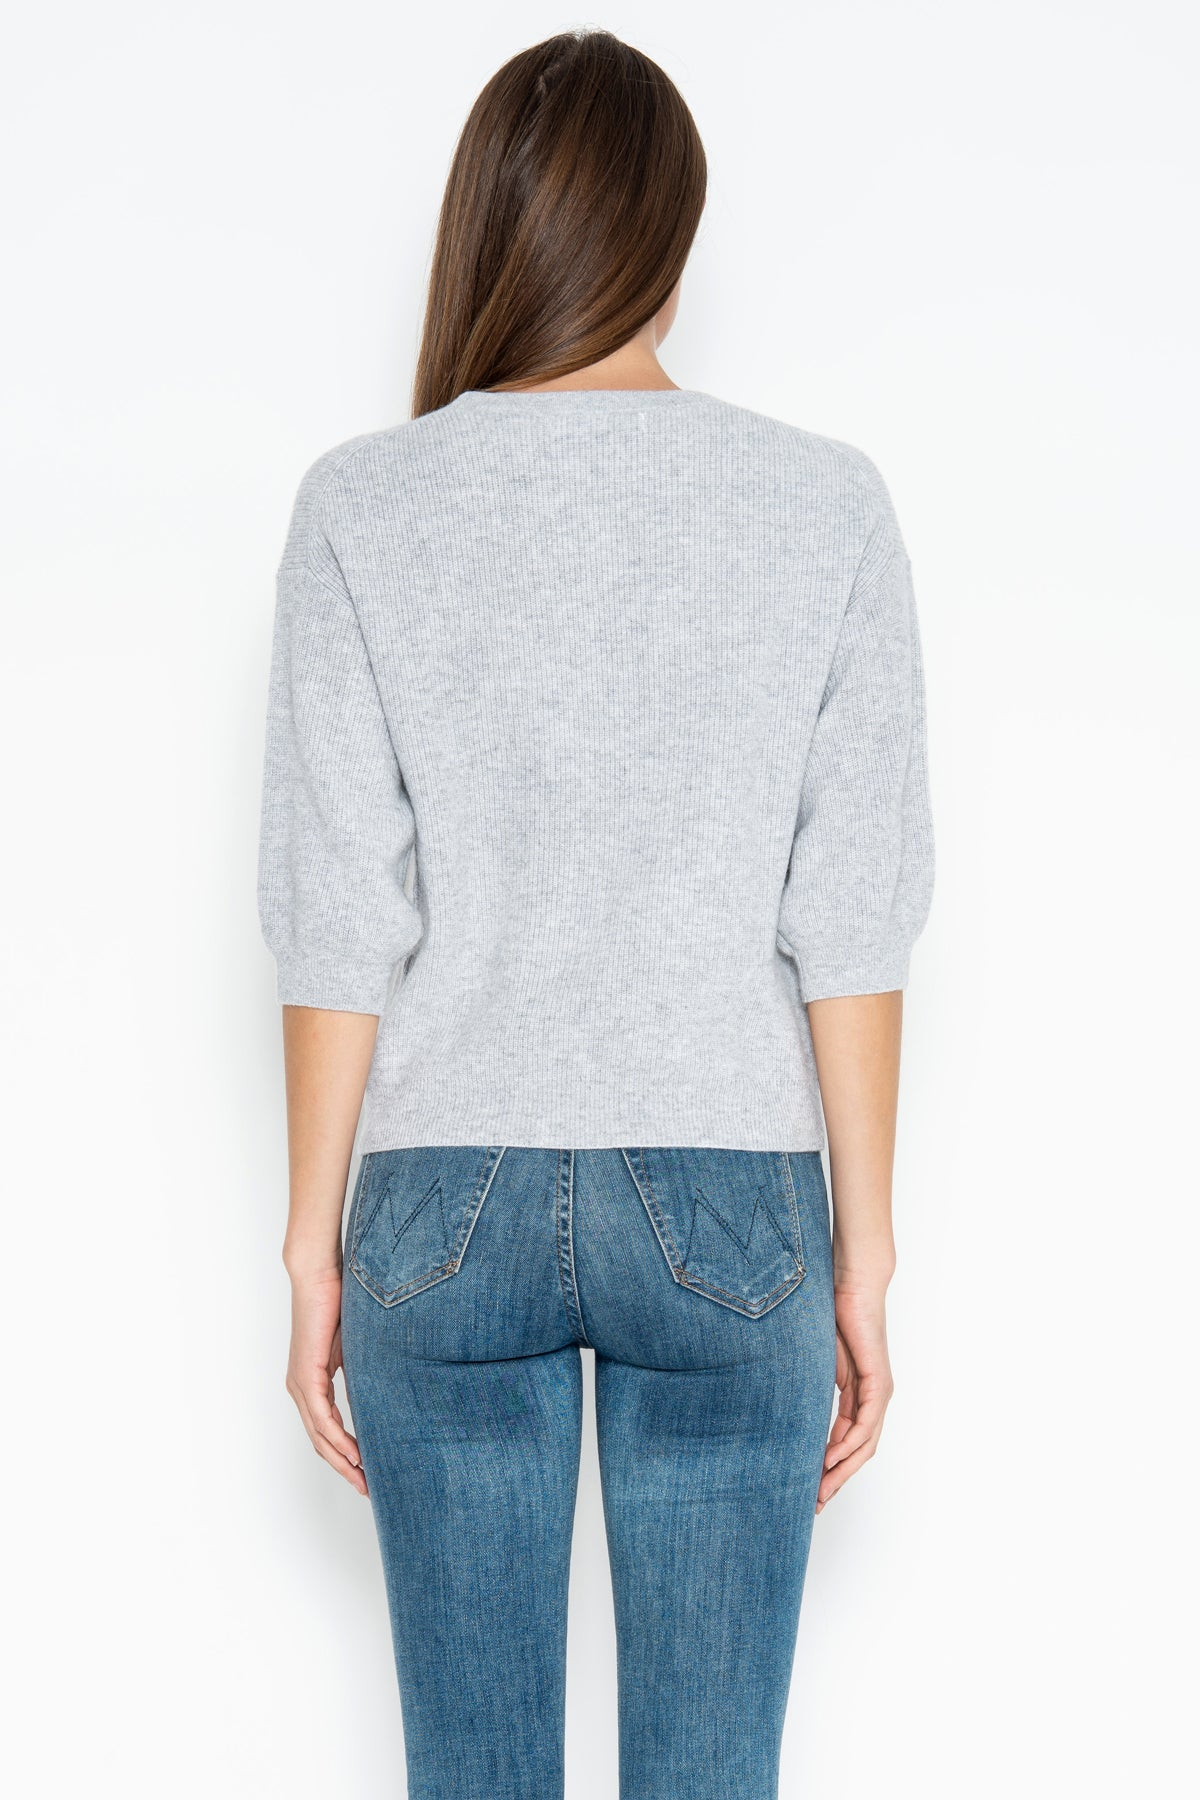 Haven 3/4 Cashmere Pullover - Heather Grey